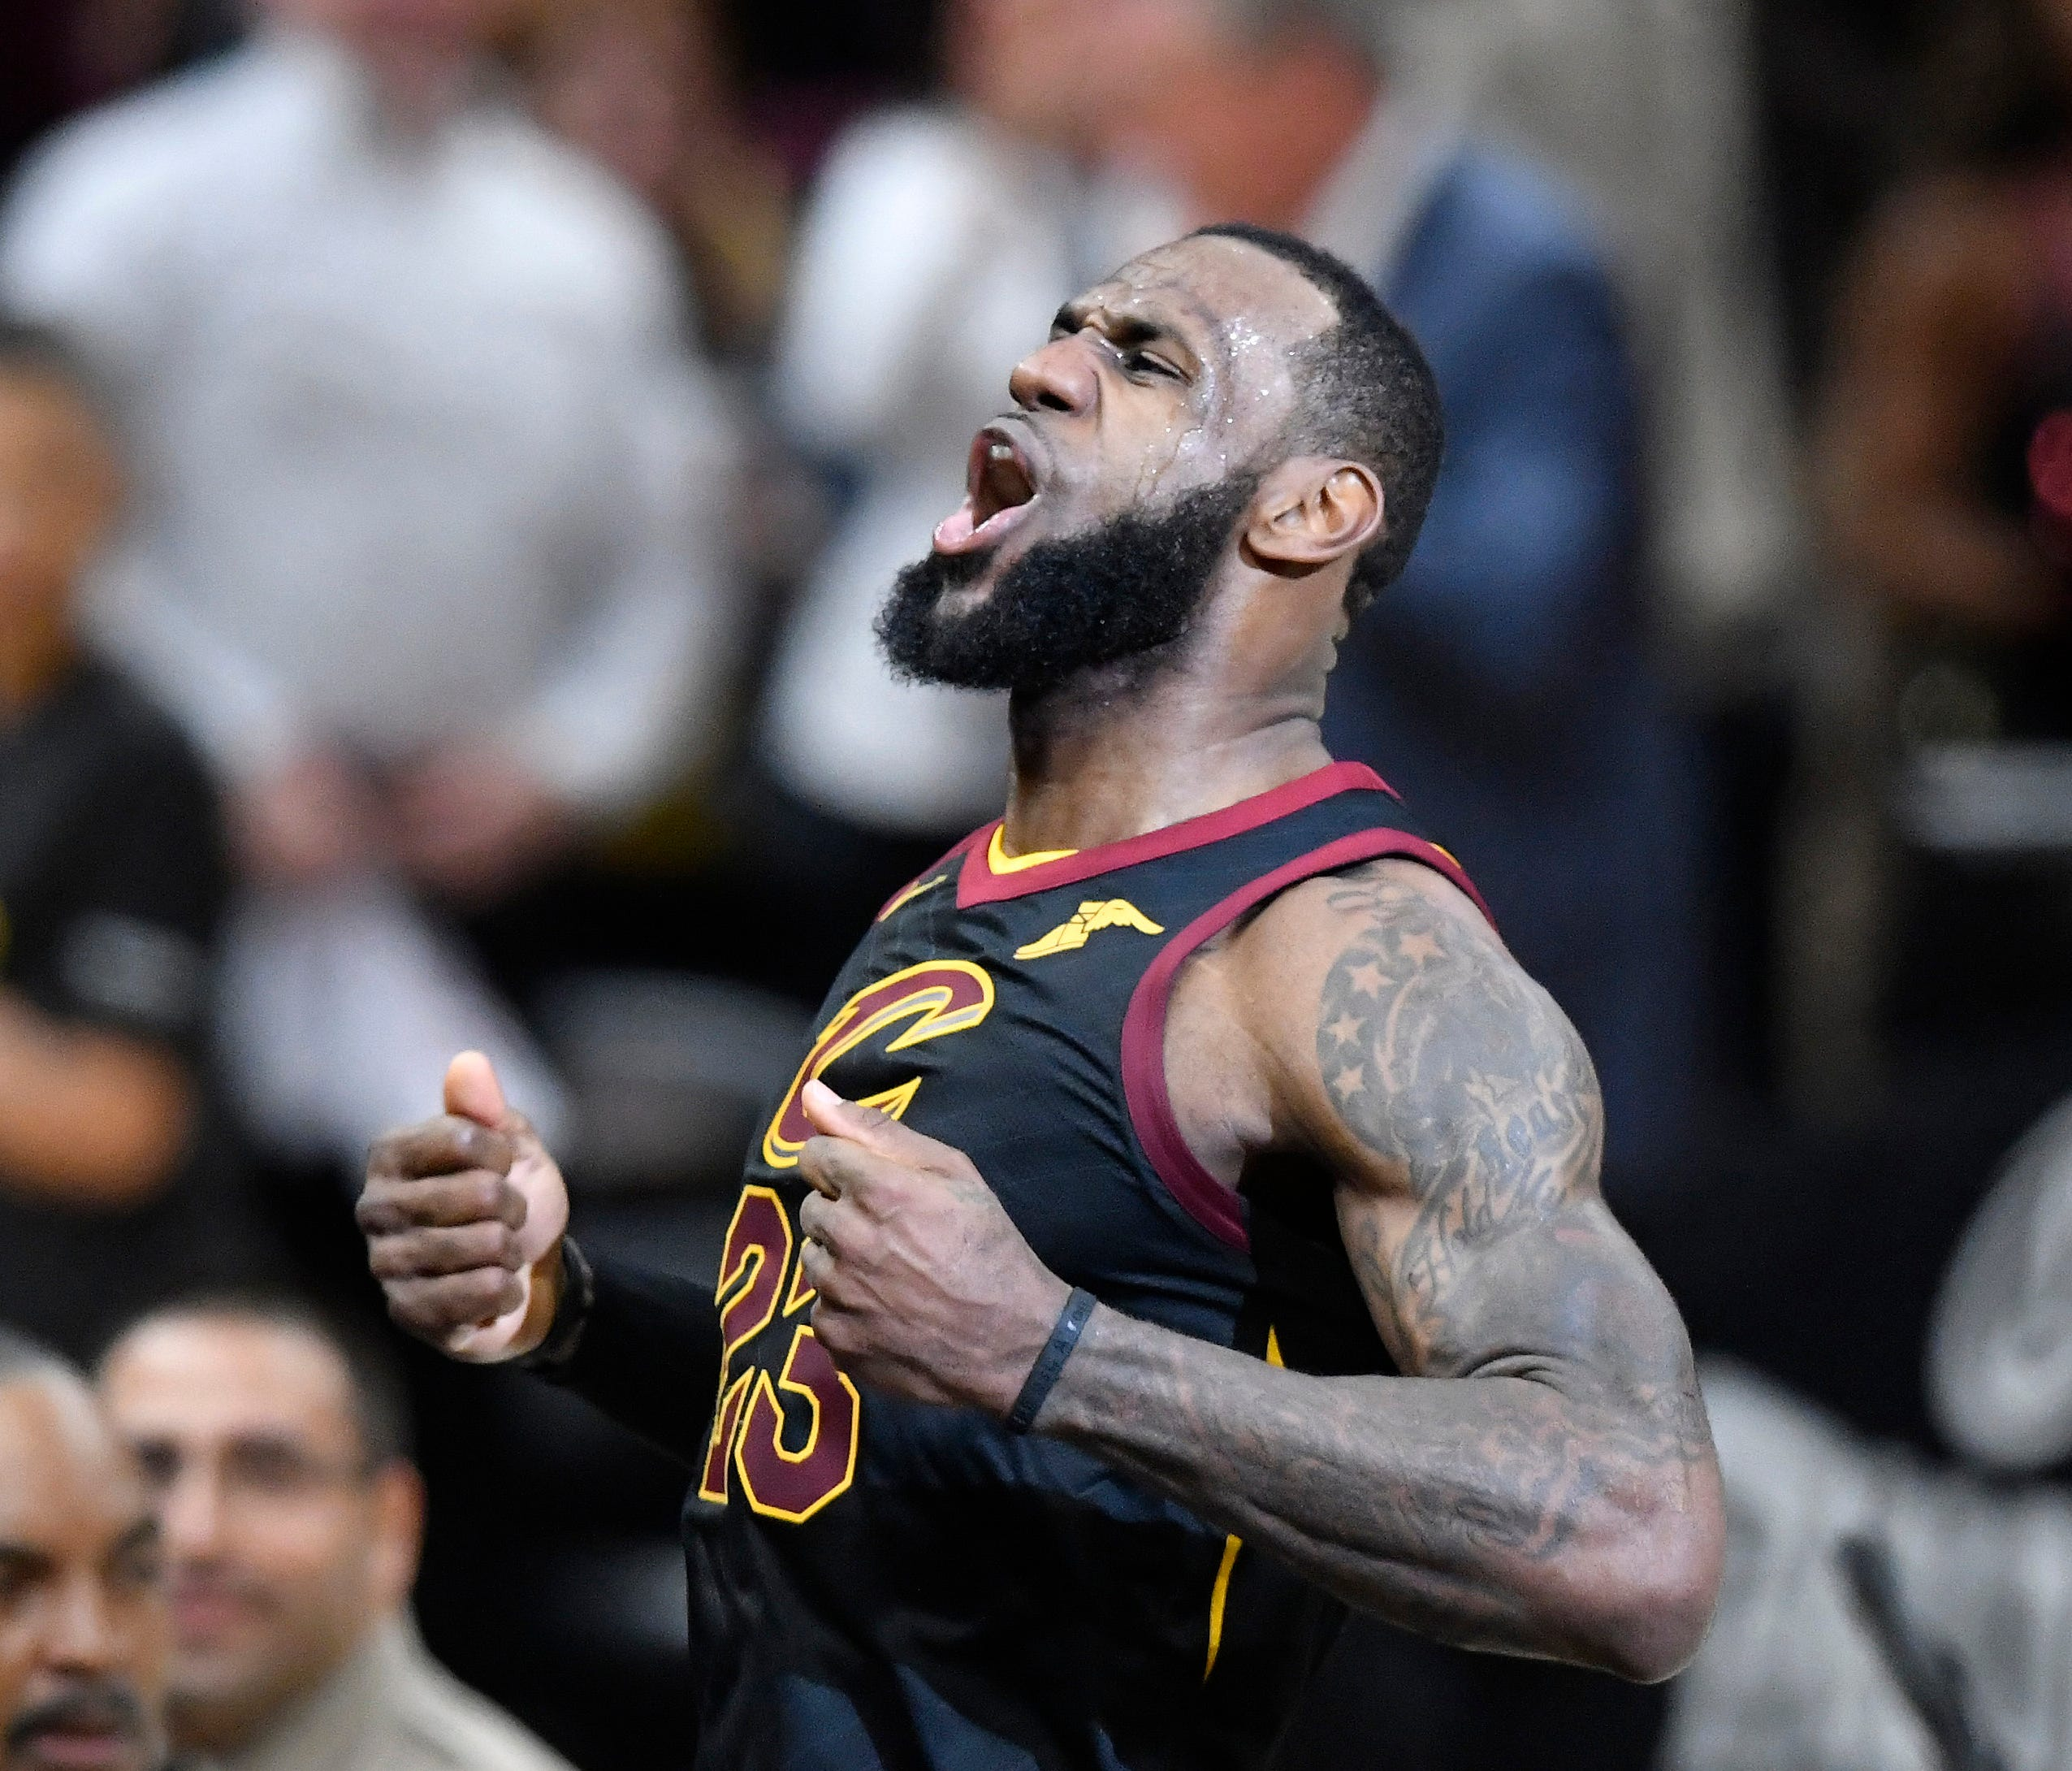 Cleveland Cavaliers forward LeBron James celebrates his game-winning three-point basket in the fourth quarter against the Indiana Pacers.